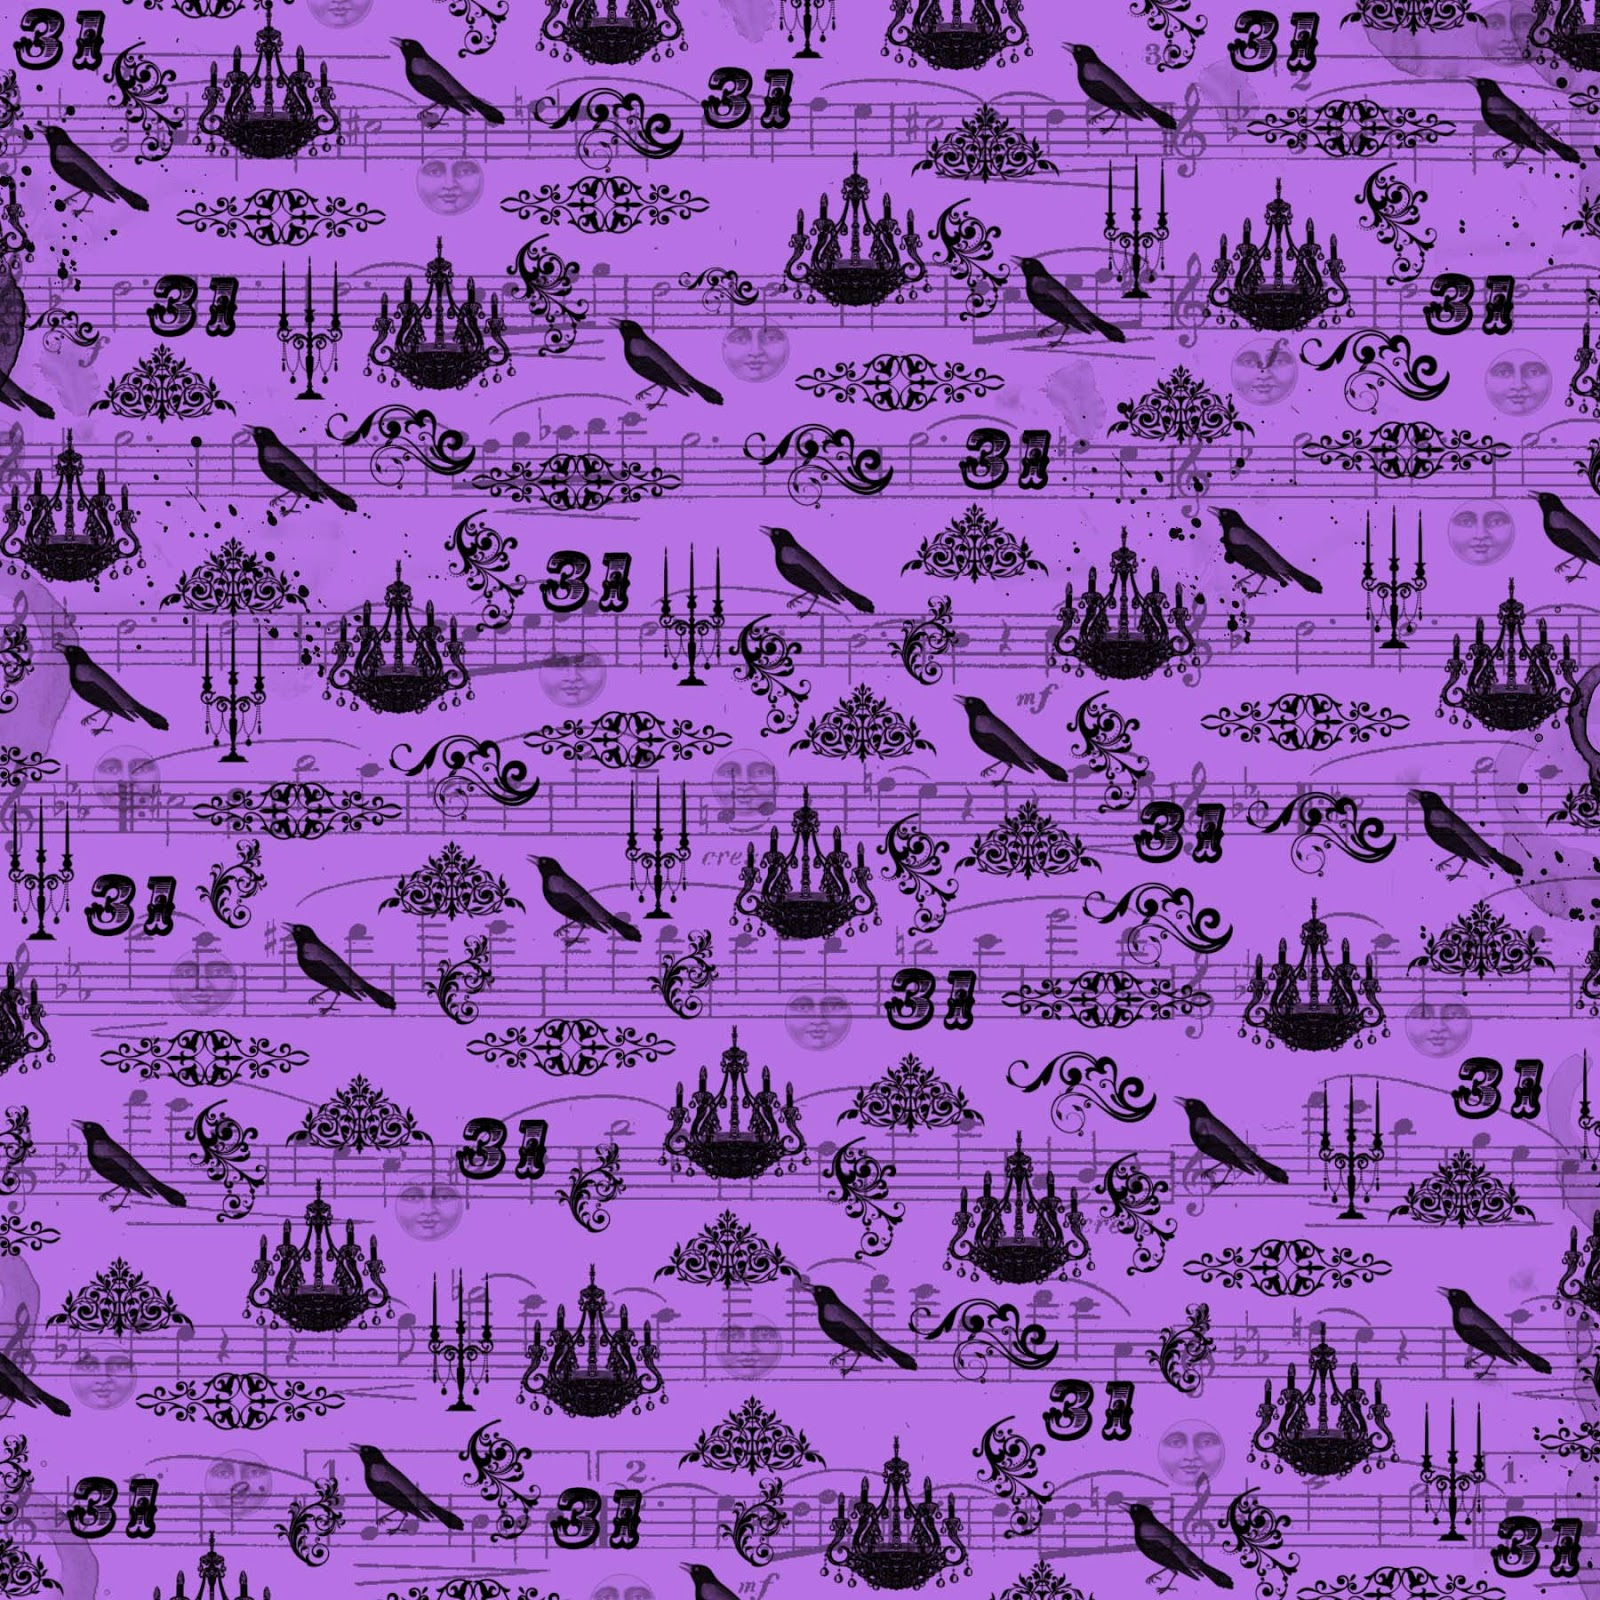 It's just an image of Inventive Purple Scrapbooking Paper